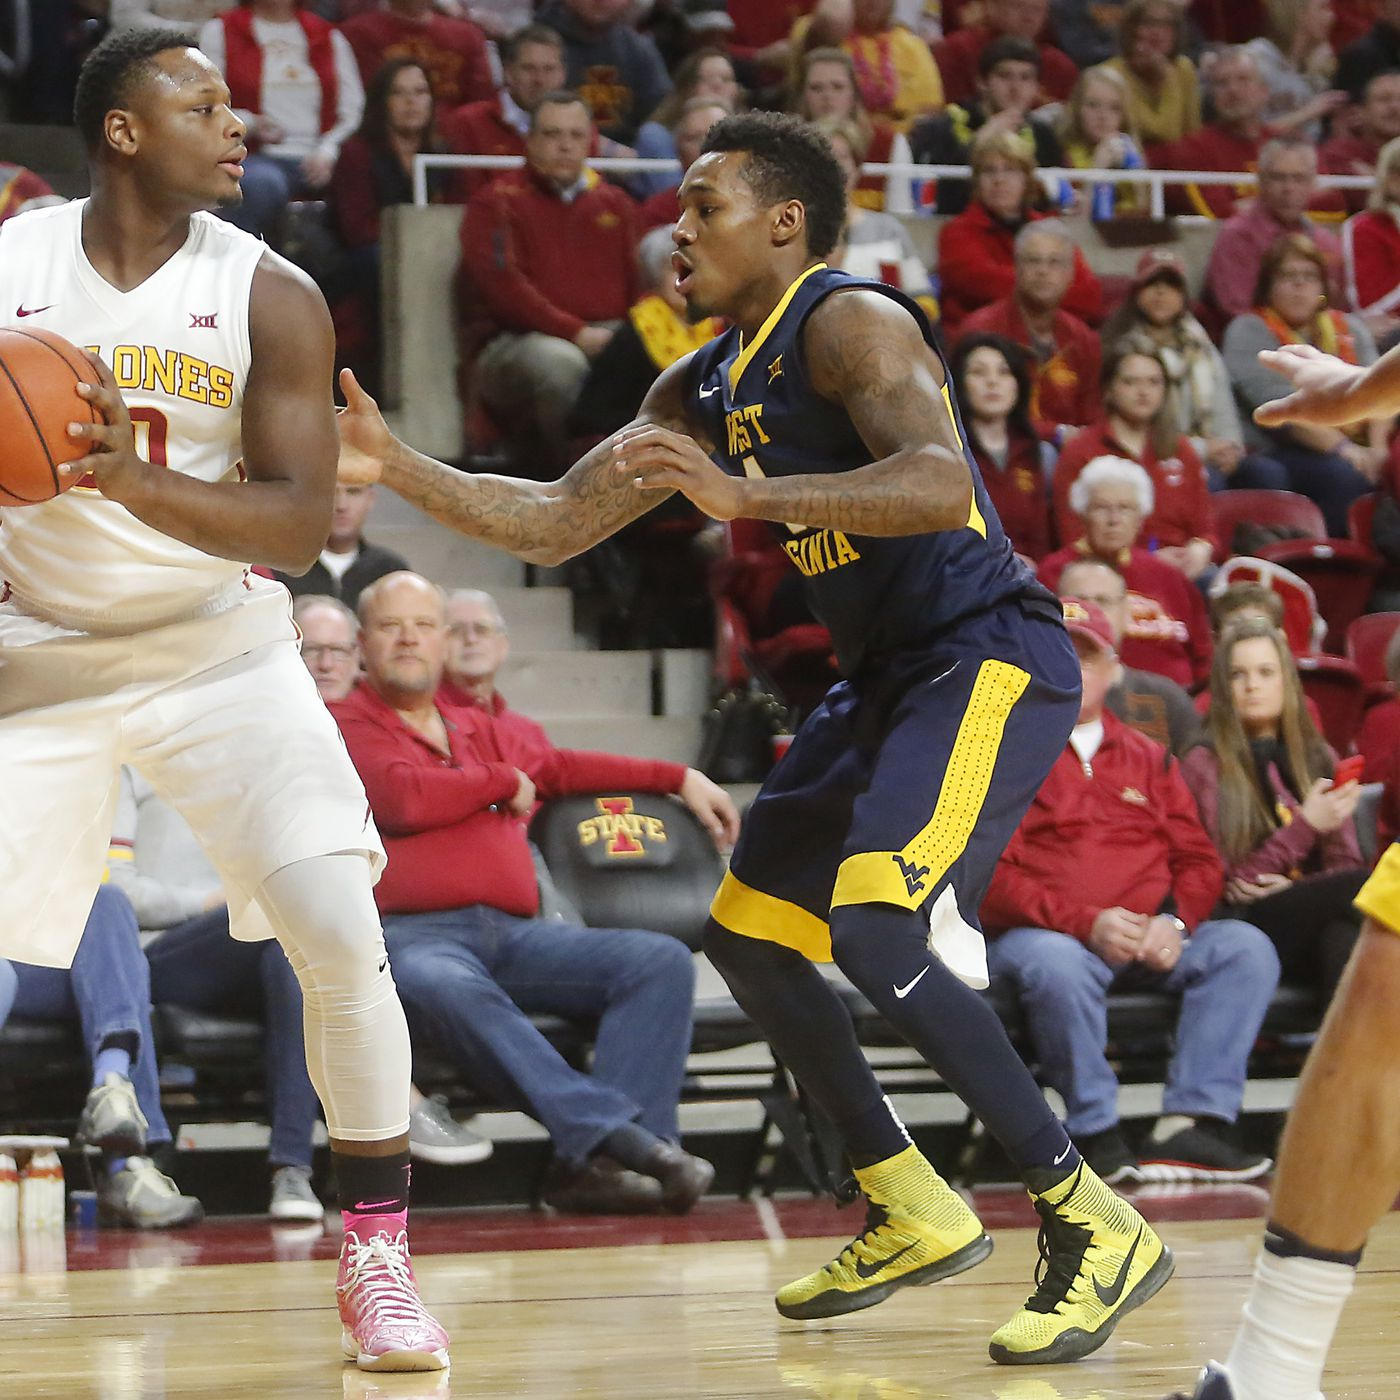 c0c1e1bd0e6d No. 15 West Virginia Looks To Get Back On Track Against Iowa State ...